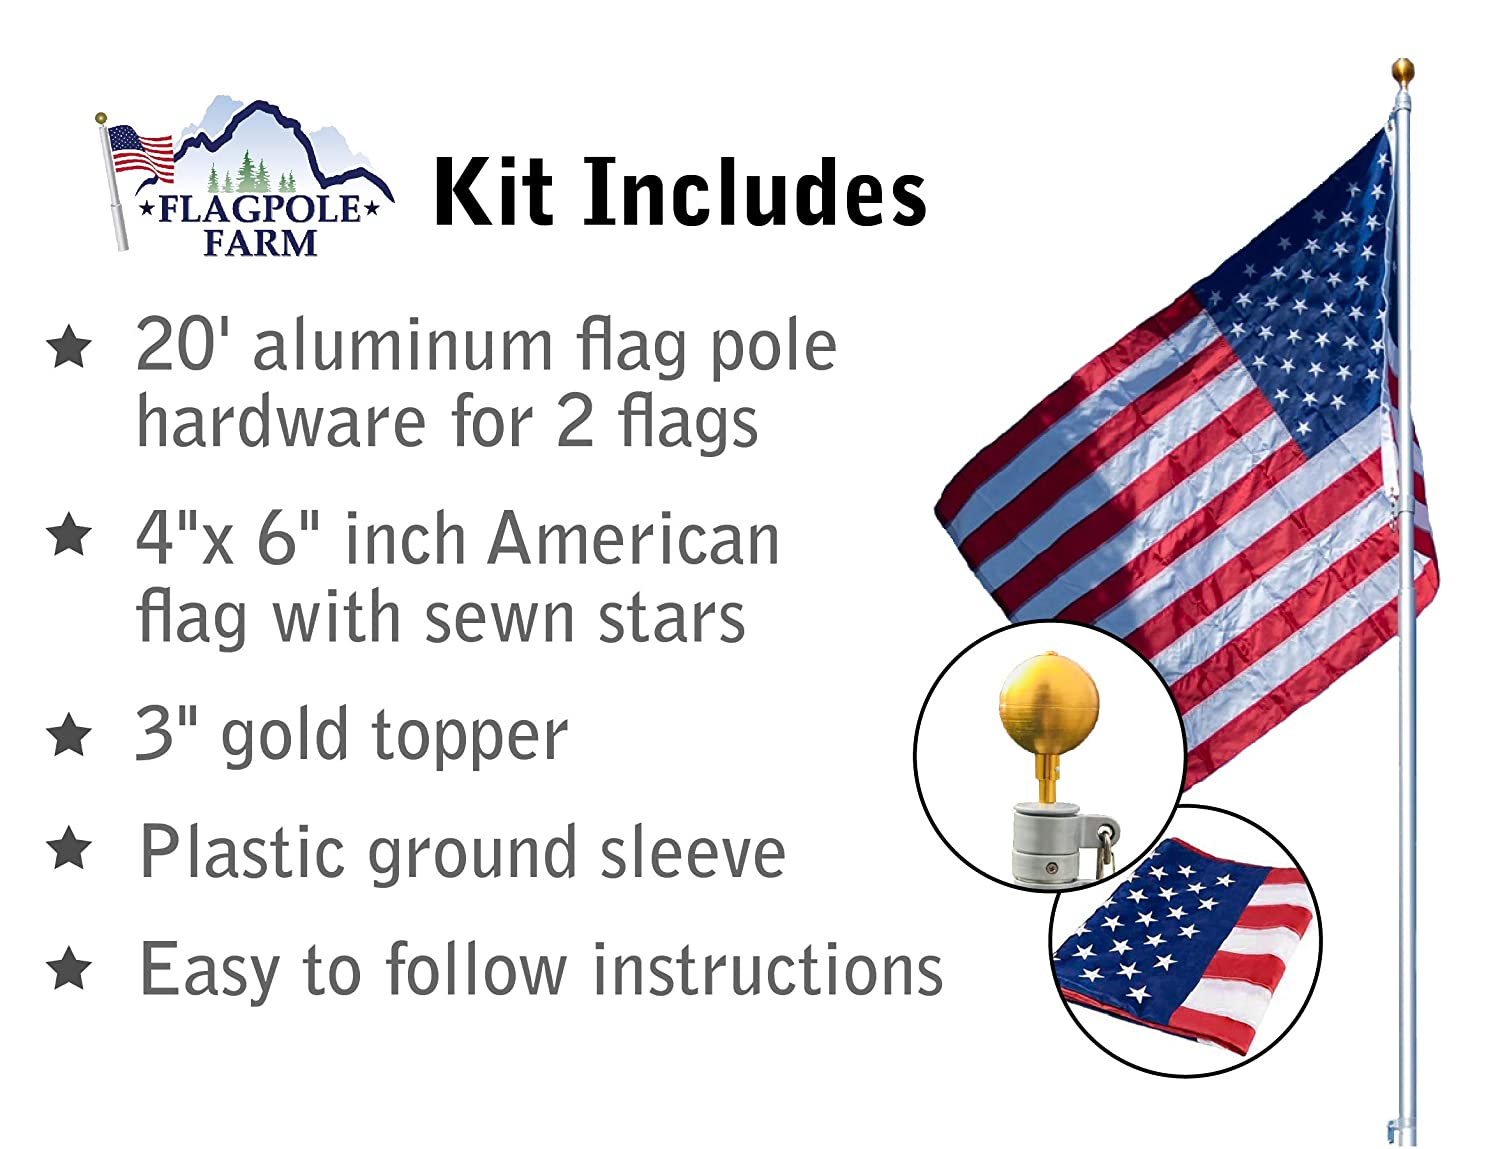 Titan Telescoping Flag Poles, Silver, 20ft- Heavy Duty Aluminum Flag Pole  Kit, Kit Includes, Telescoping Flagpole, Hardware to Hang 2 Flags, 4 x 6